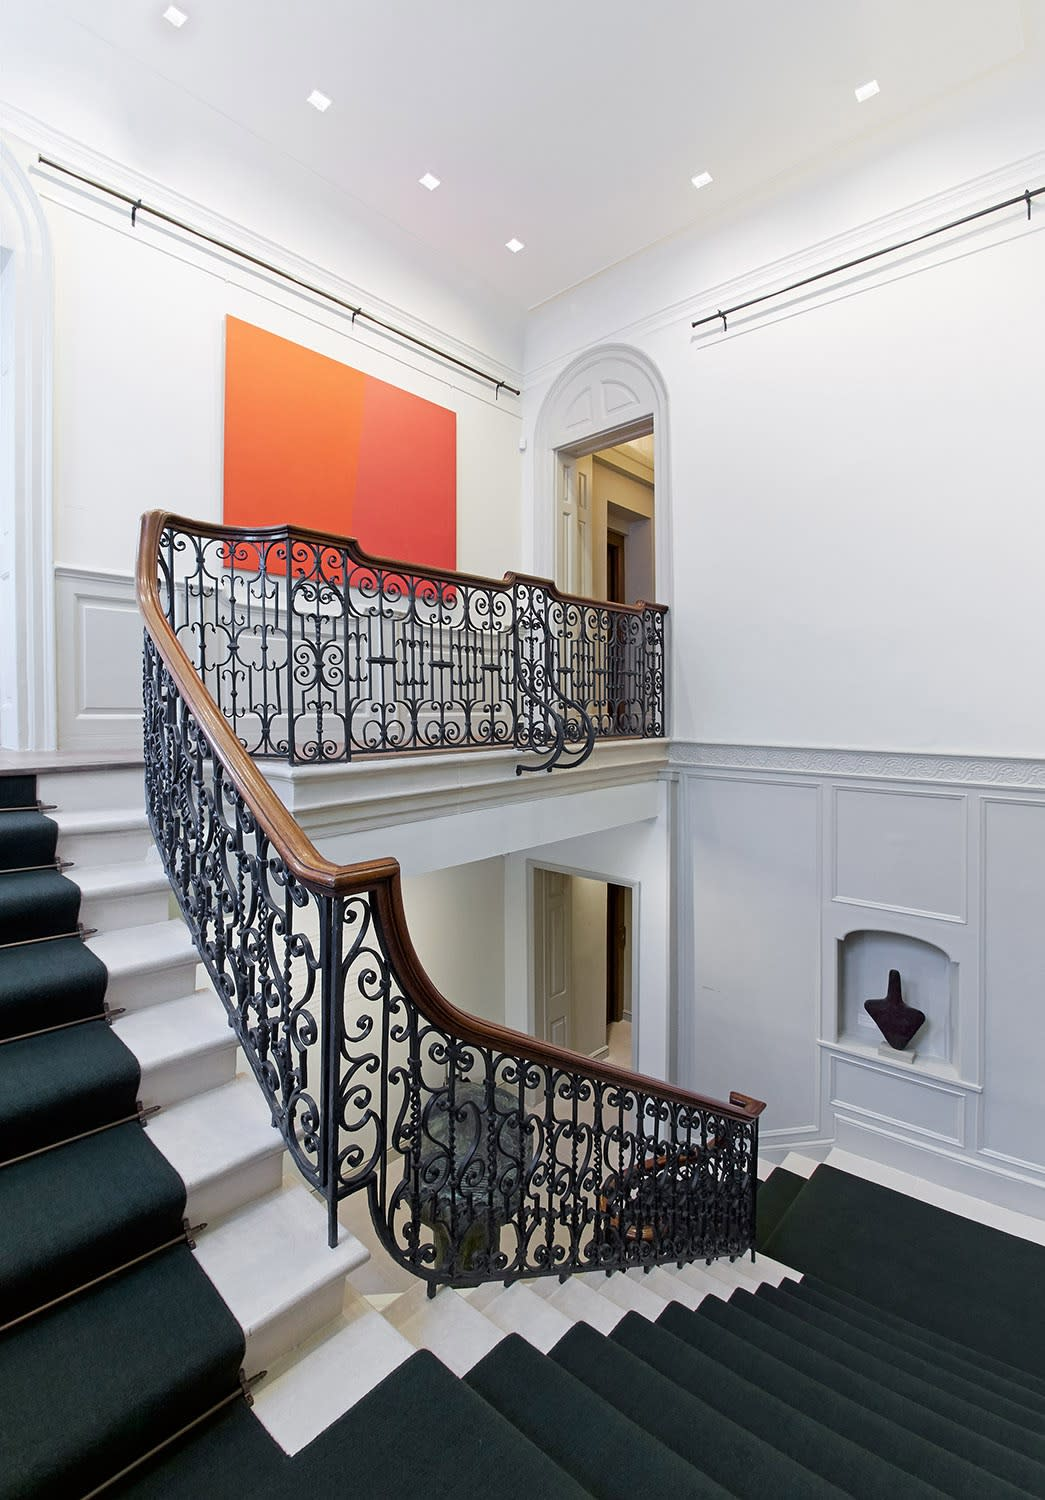 Installation view - Main staircase